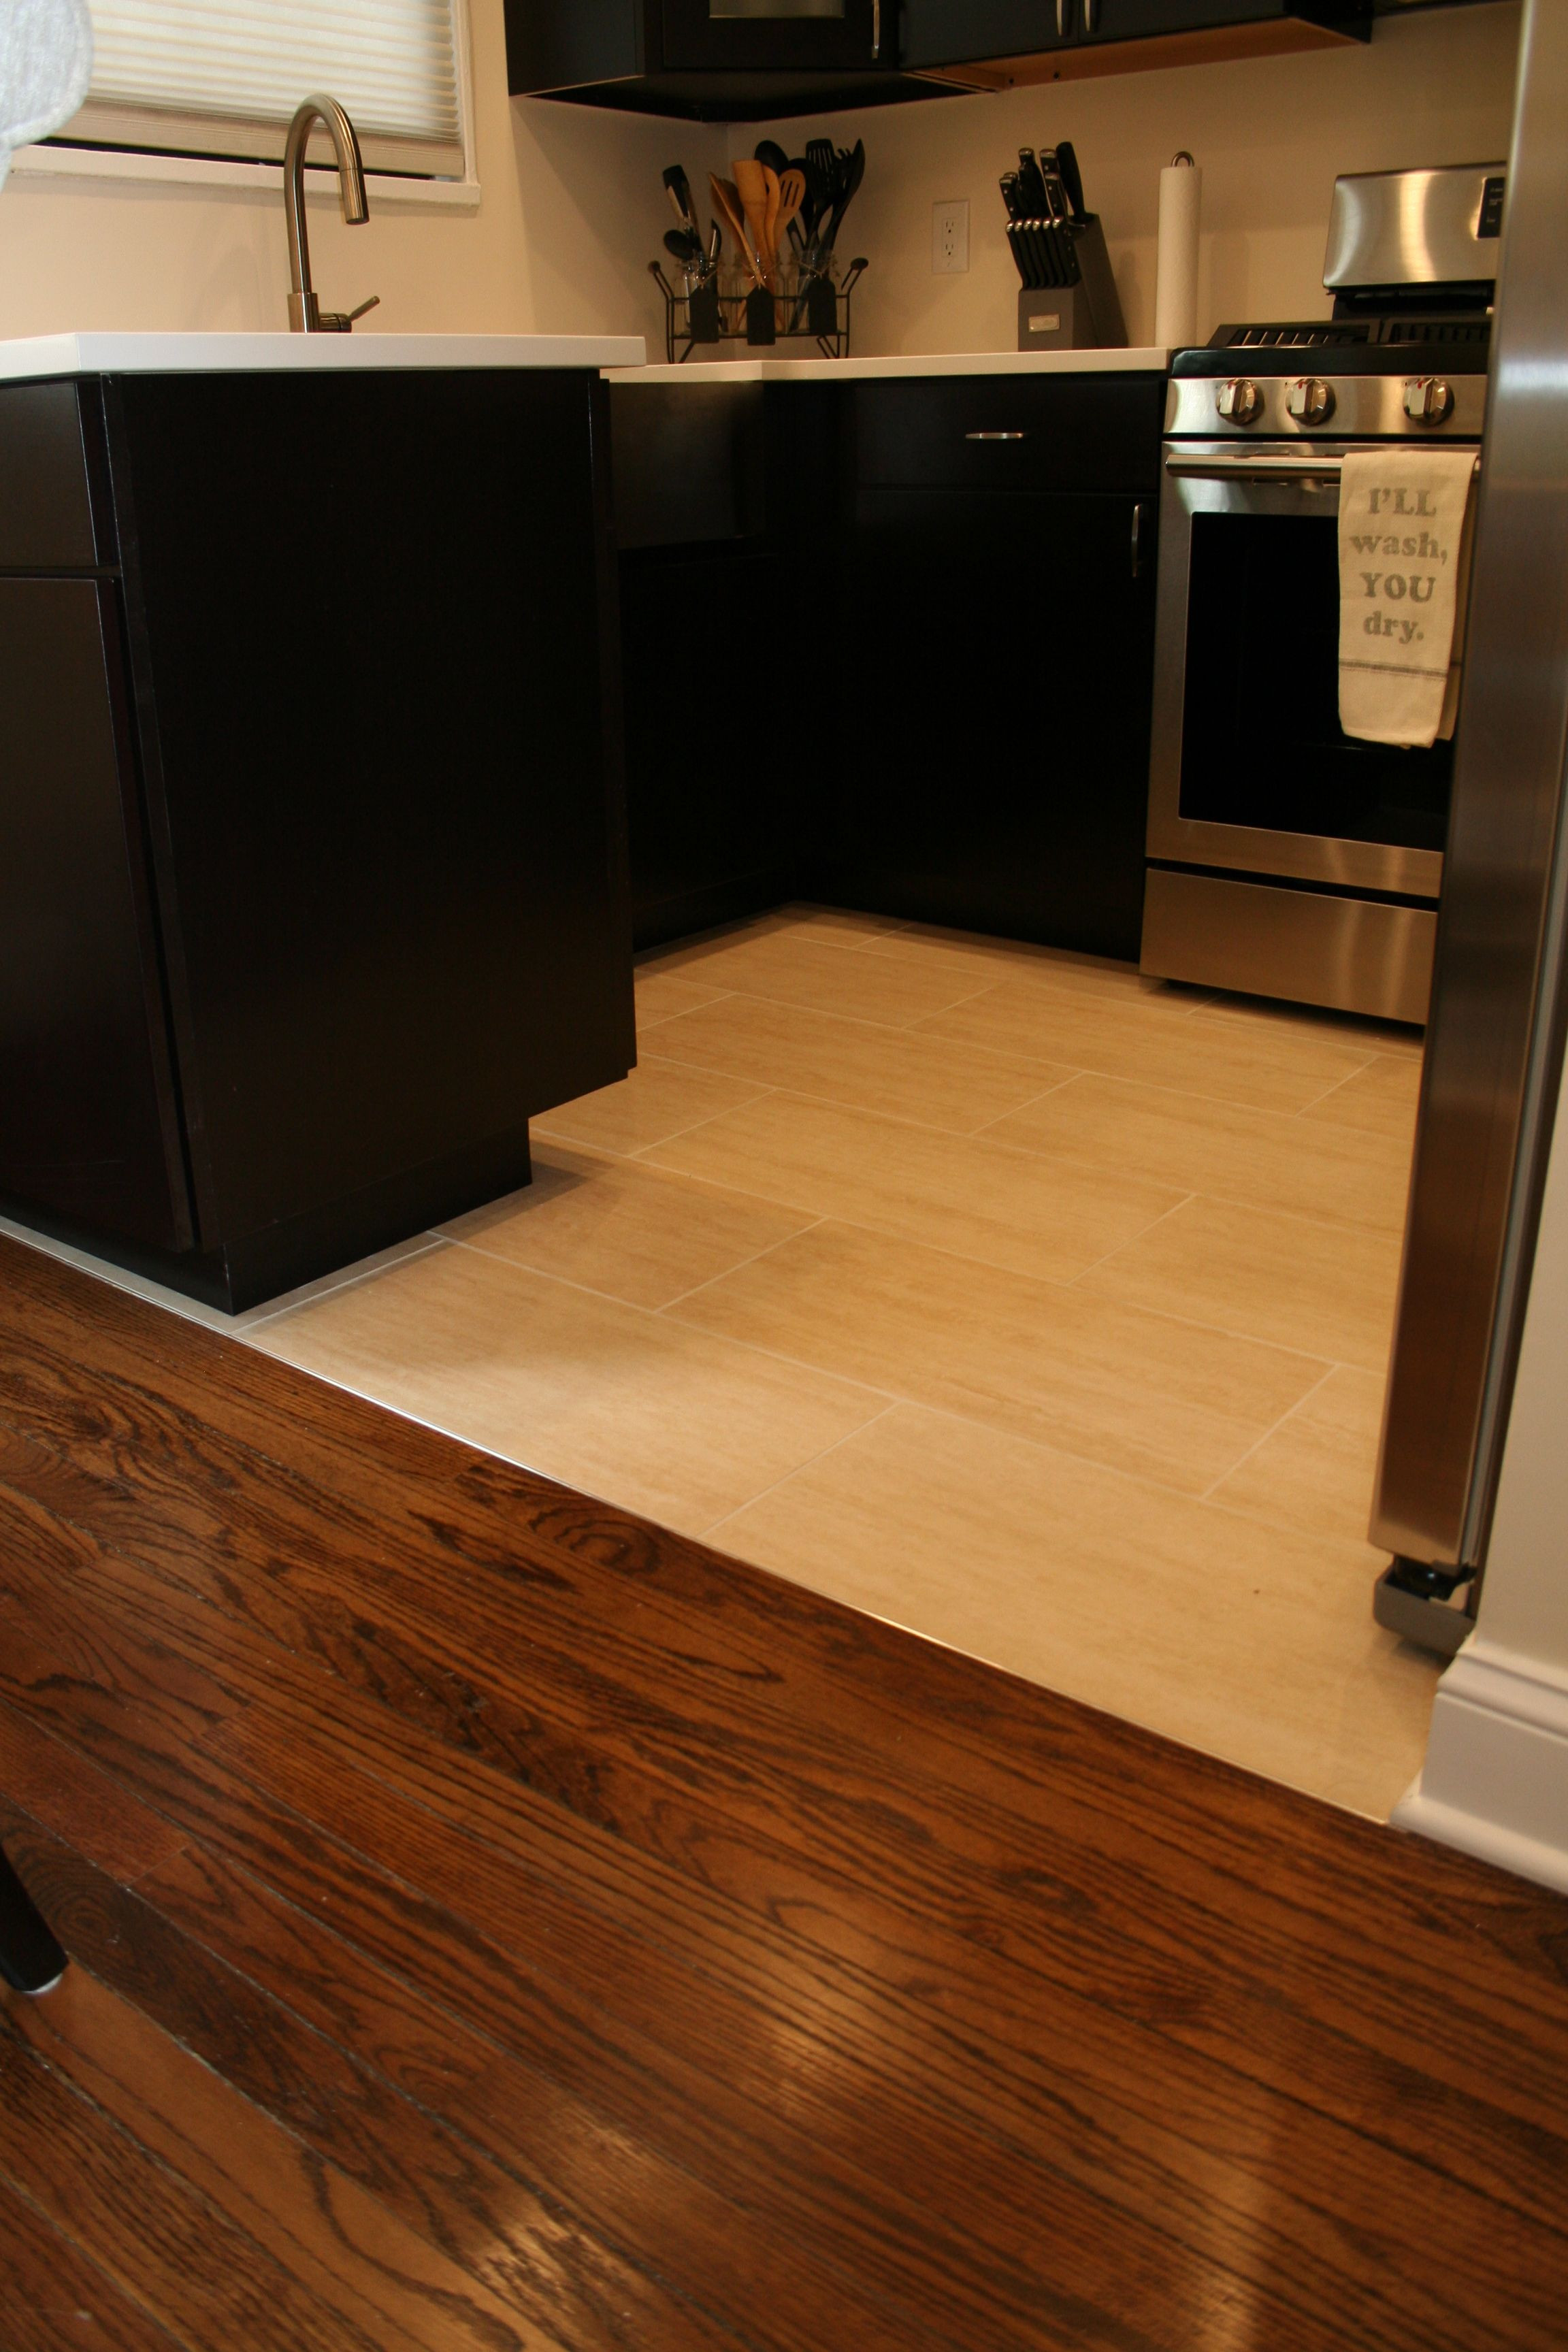 hardwood flooring portland maine of pin by kabinet king on our work pinterest flooring tiles and regarding dark wood floors beautiful dark wood floors love the dark bamboo floors and pewter walls